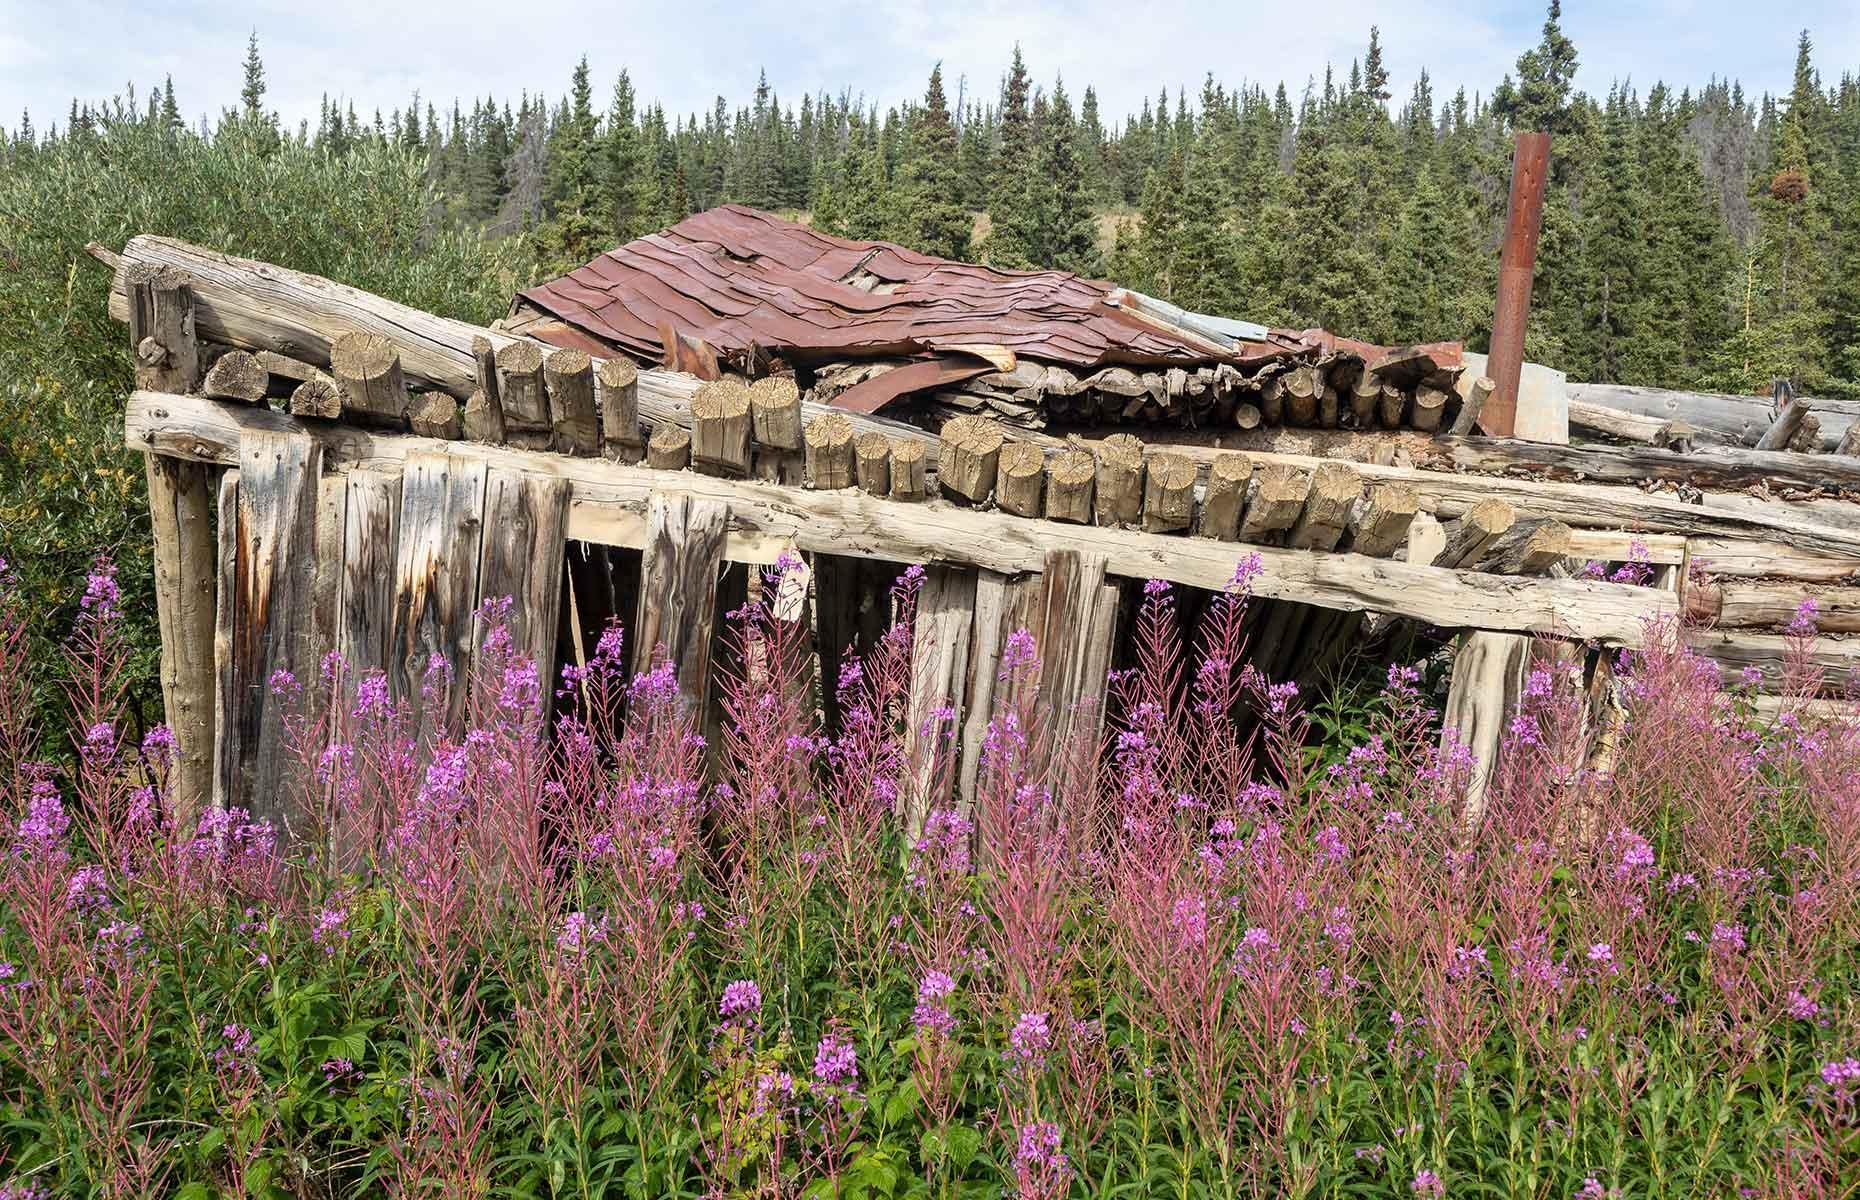 Slide 31 of 41: Instead, Mother Nature has been making serious grounds in this ghost town. Rabbits and squirrels skit between the abandoned trucks and decrepit homesteads, and Yukon fireweed grows up in mid-July through to September. In winter, the century-plus-old cabins sigh under the weight of thick snow.